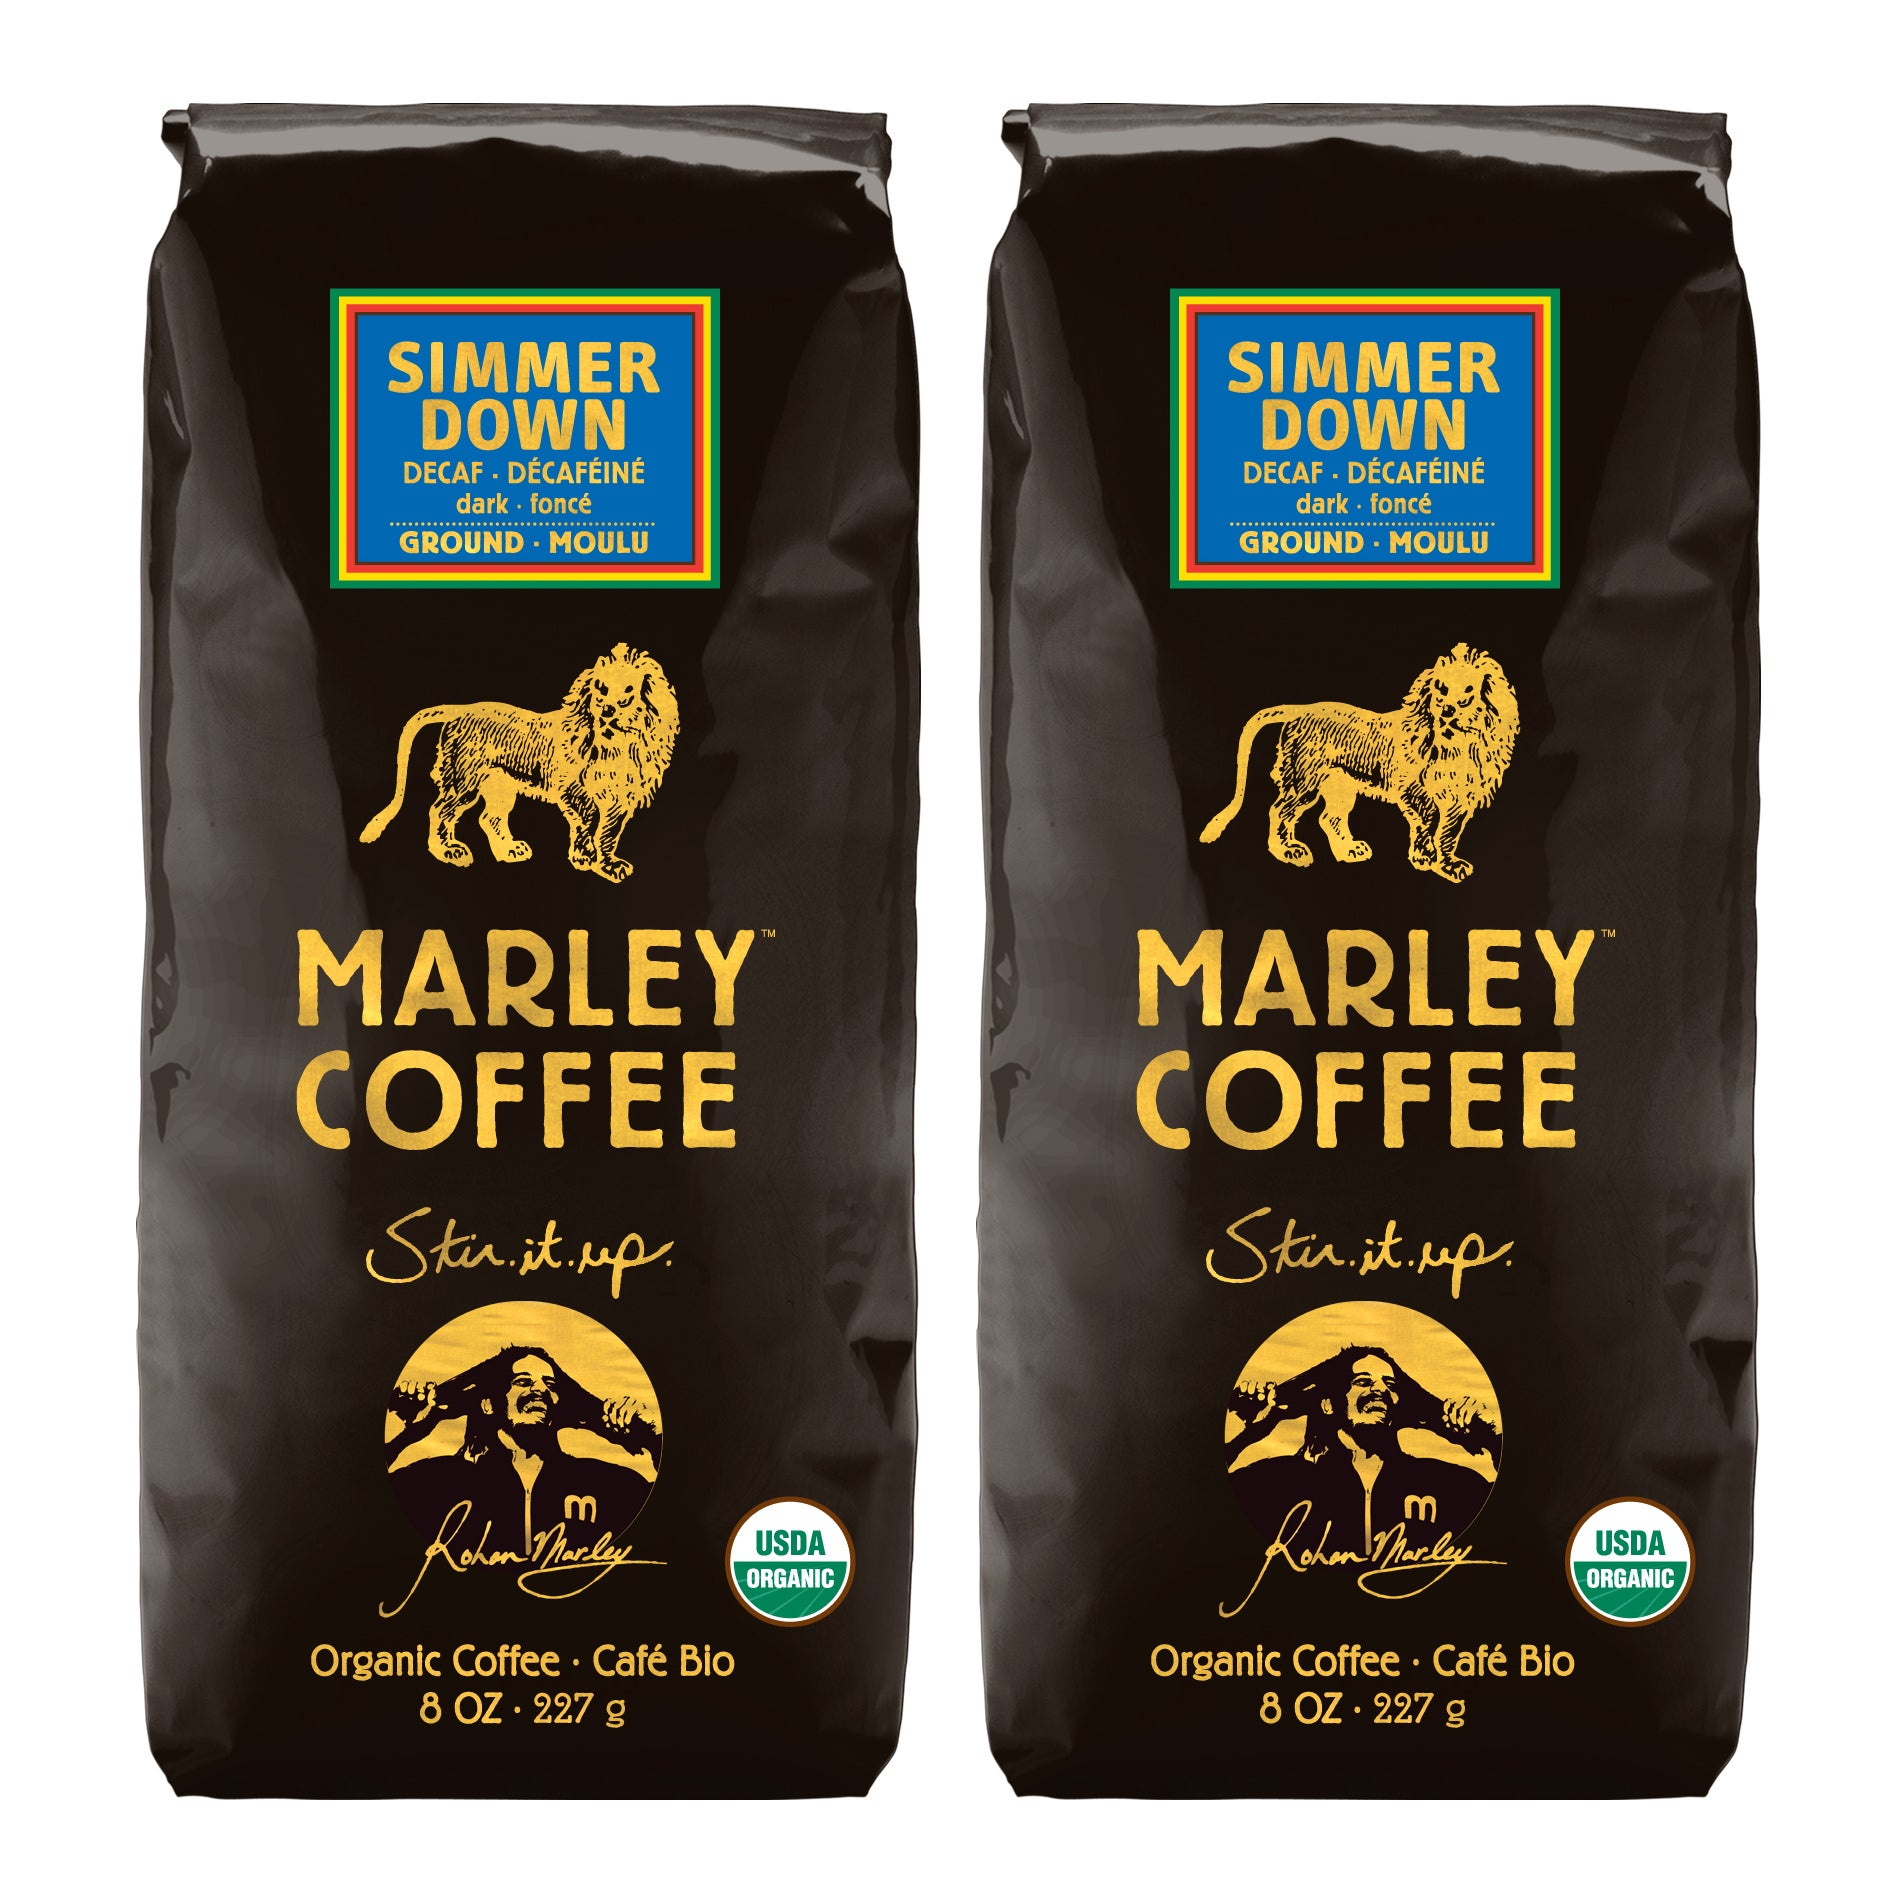 Marley Coffee Simmer Down Swiss Water Decaf Ground Coffee (1 Pound)